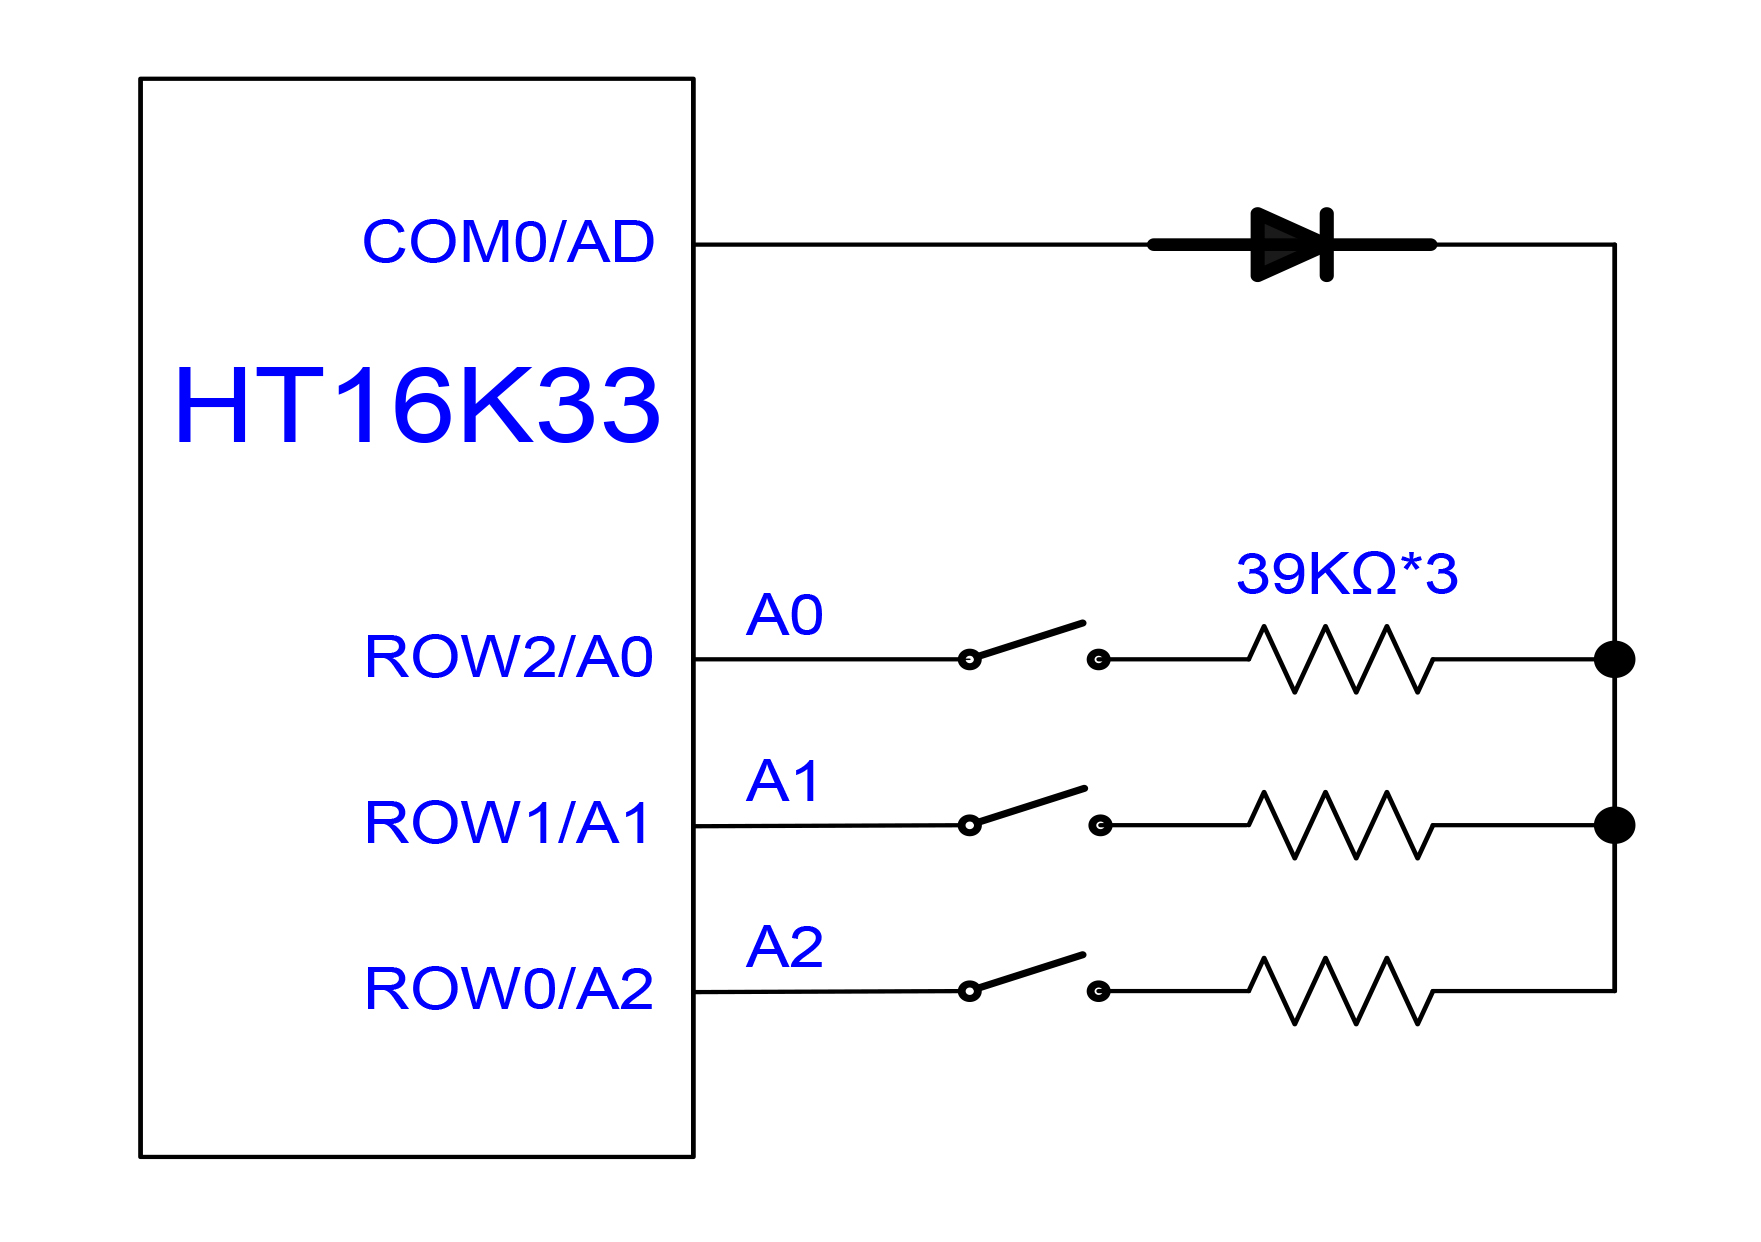 Controlling An Led Matrix With The Ht16k33 Parts Not Included Brightness Control For Multiplexed Leds Address Bits Are Set In Hardware By Wiring 39k Resistors Line A Diode To Connect Com0 Pin Either Row2 A0 Row1 A1